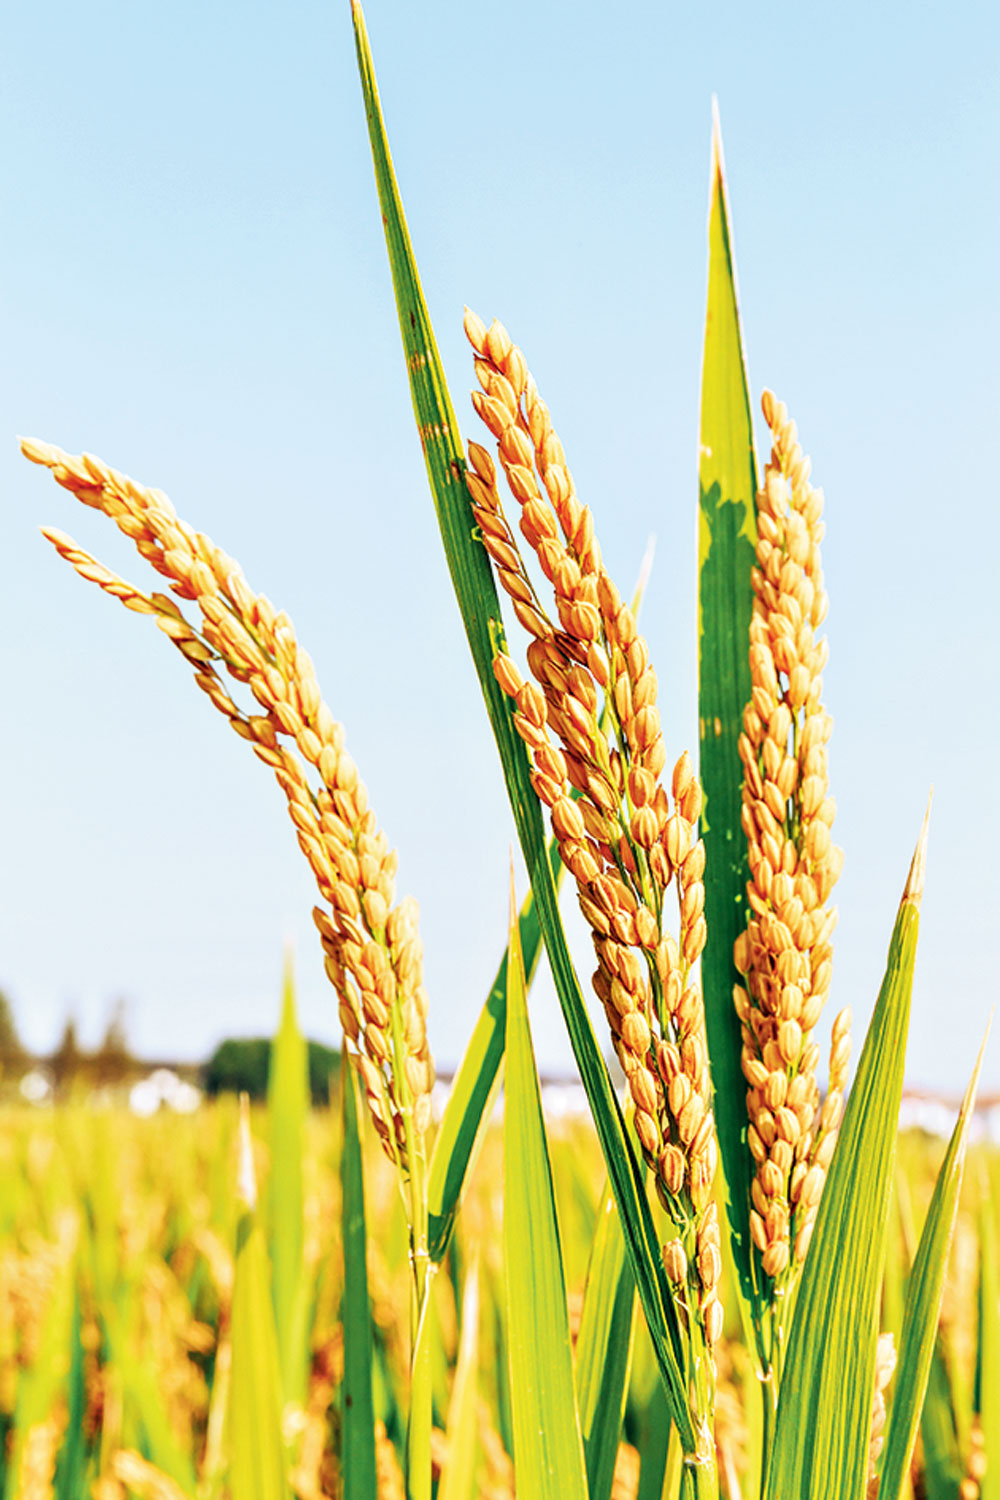 Golden Rice was developed to combat Vitamin A deficiency. But there are simpler dietary alternatives.